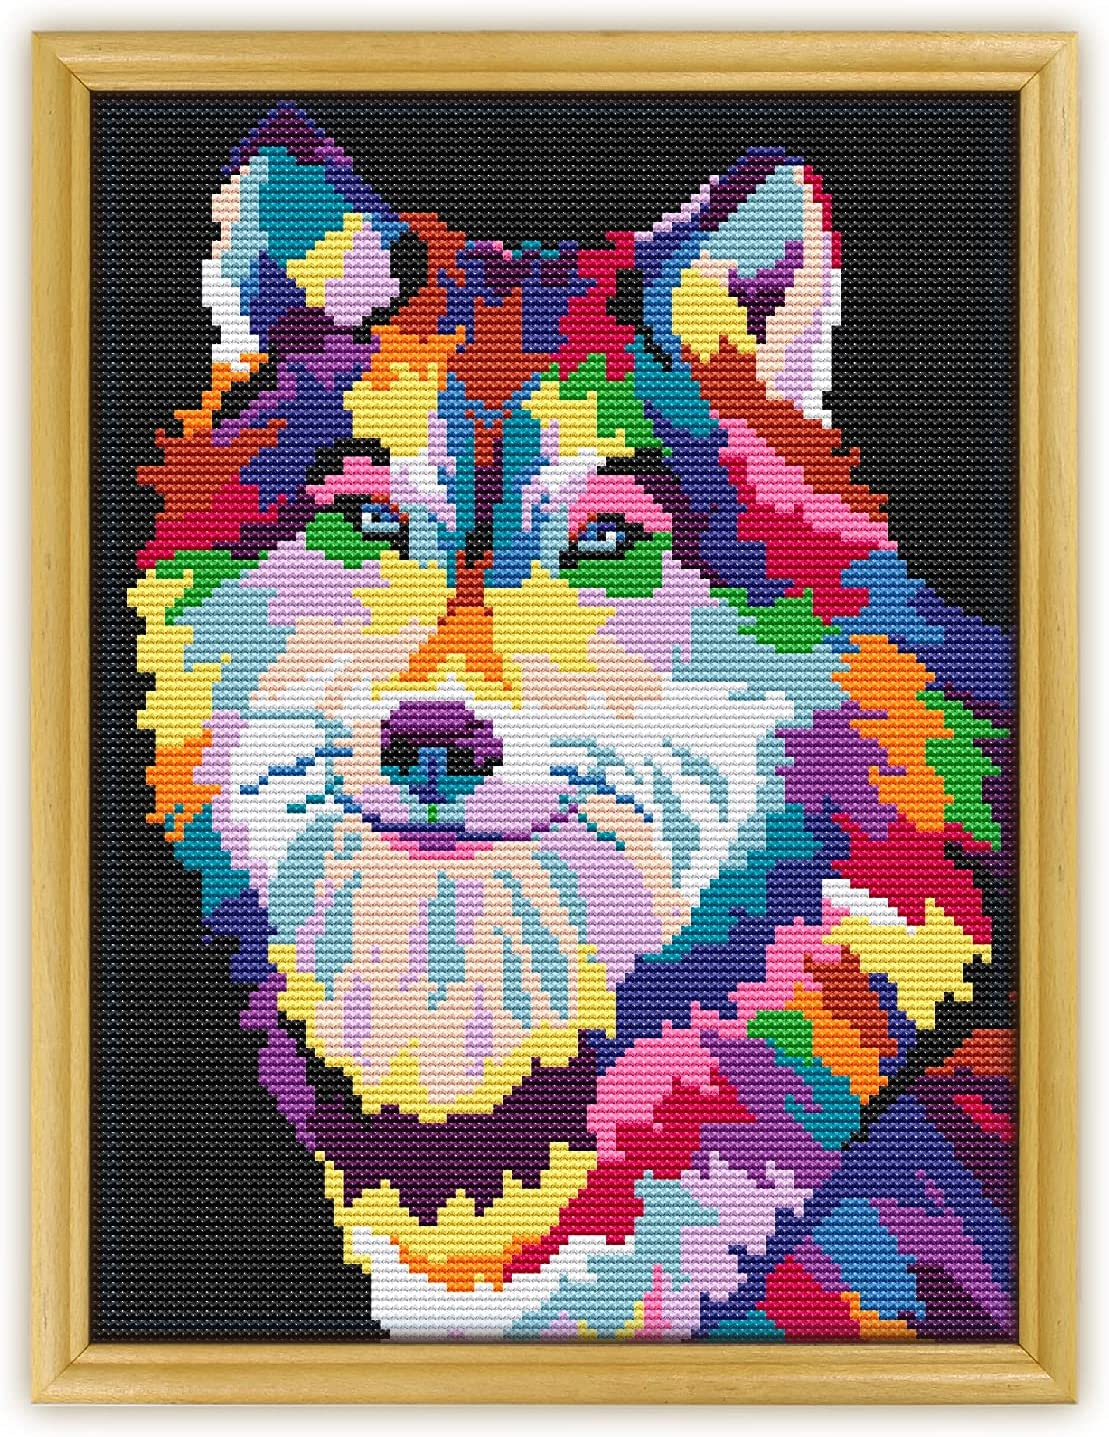 Wolf Abstract Animal K908 Counted Stitch Threads N Cross KIT#3. List price Los Angeles Mall